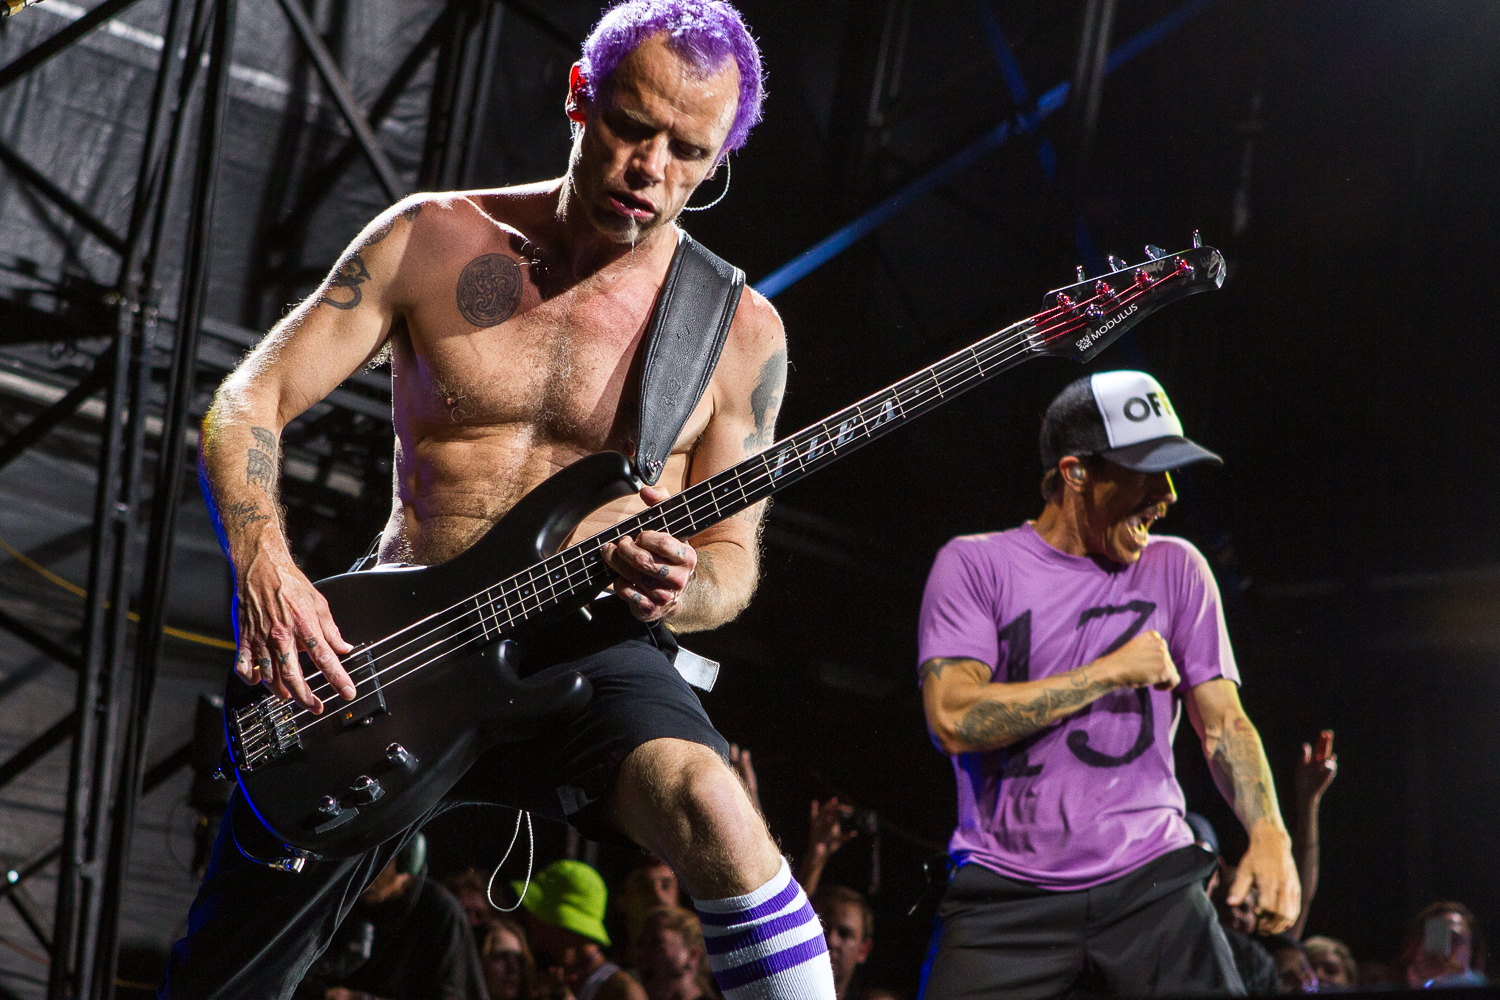 red hot chili peppers - photo #20